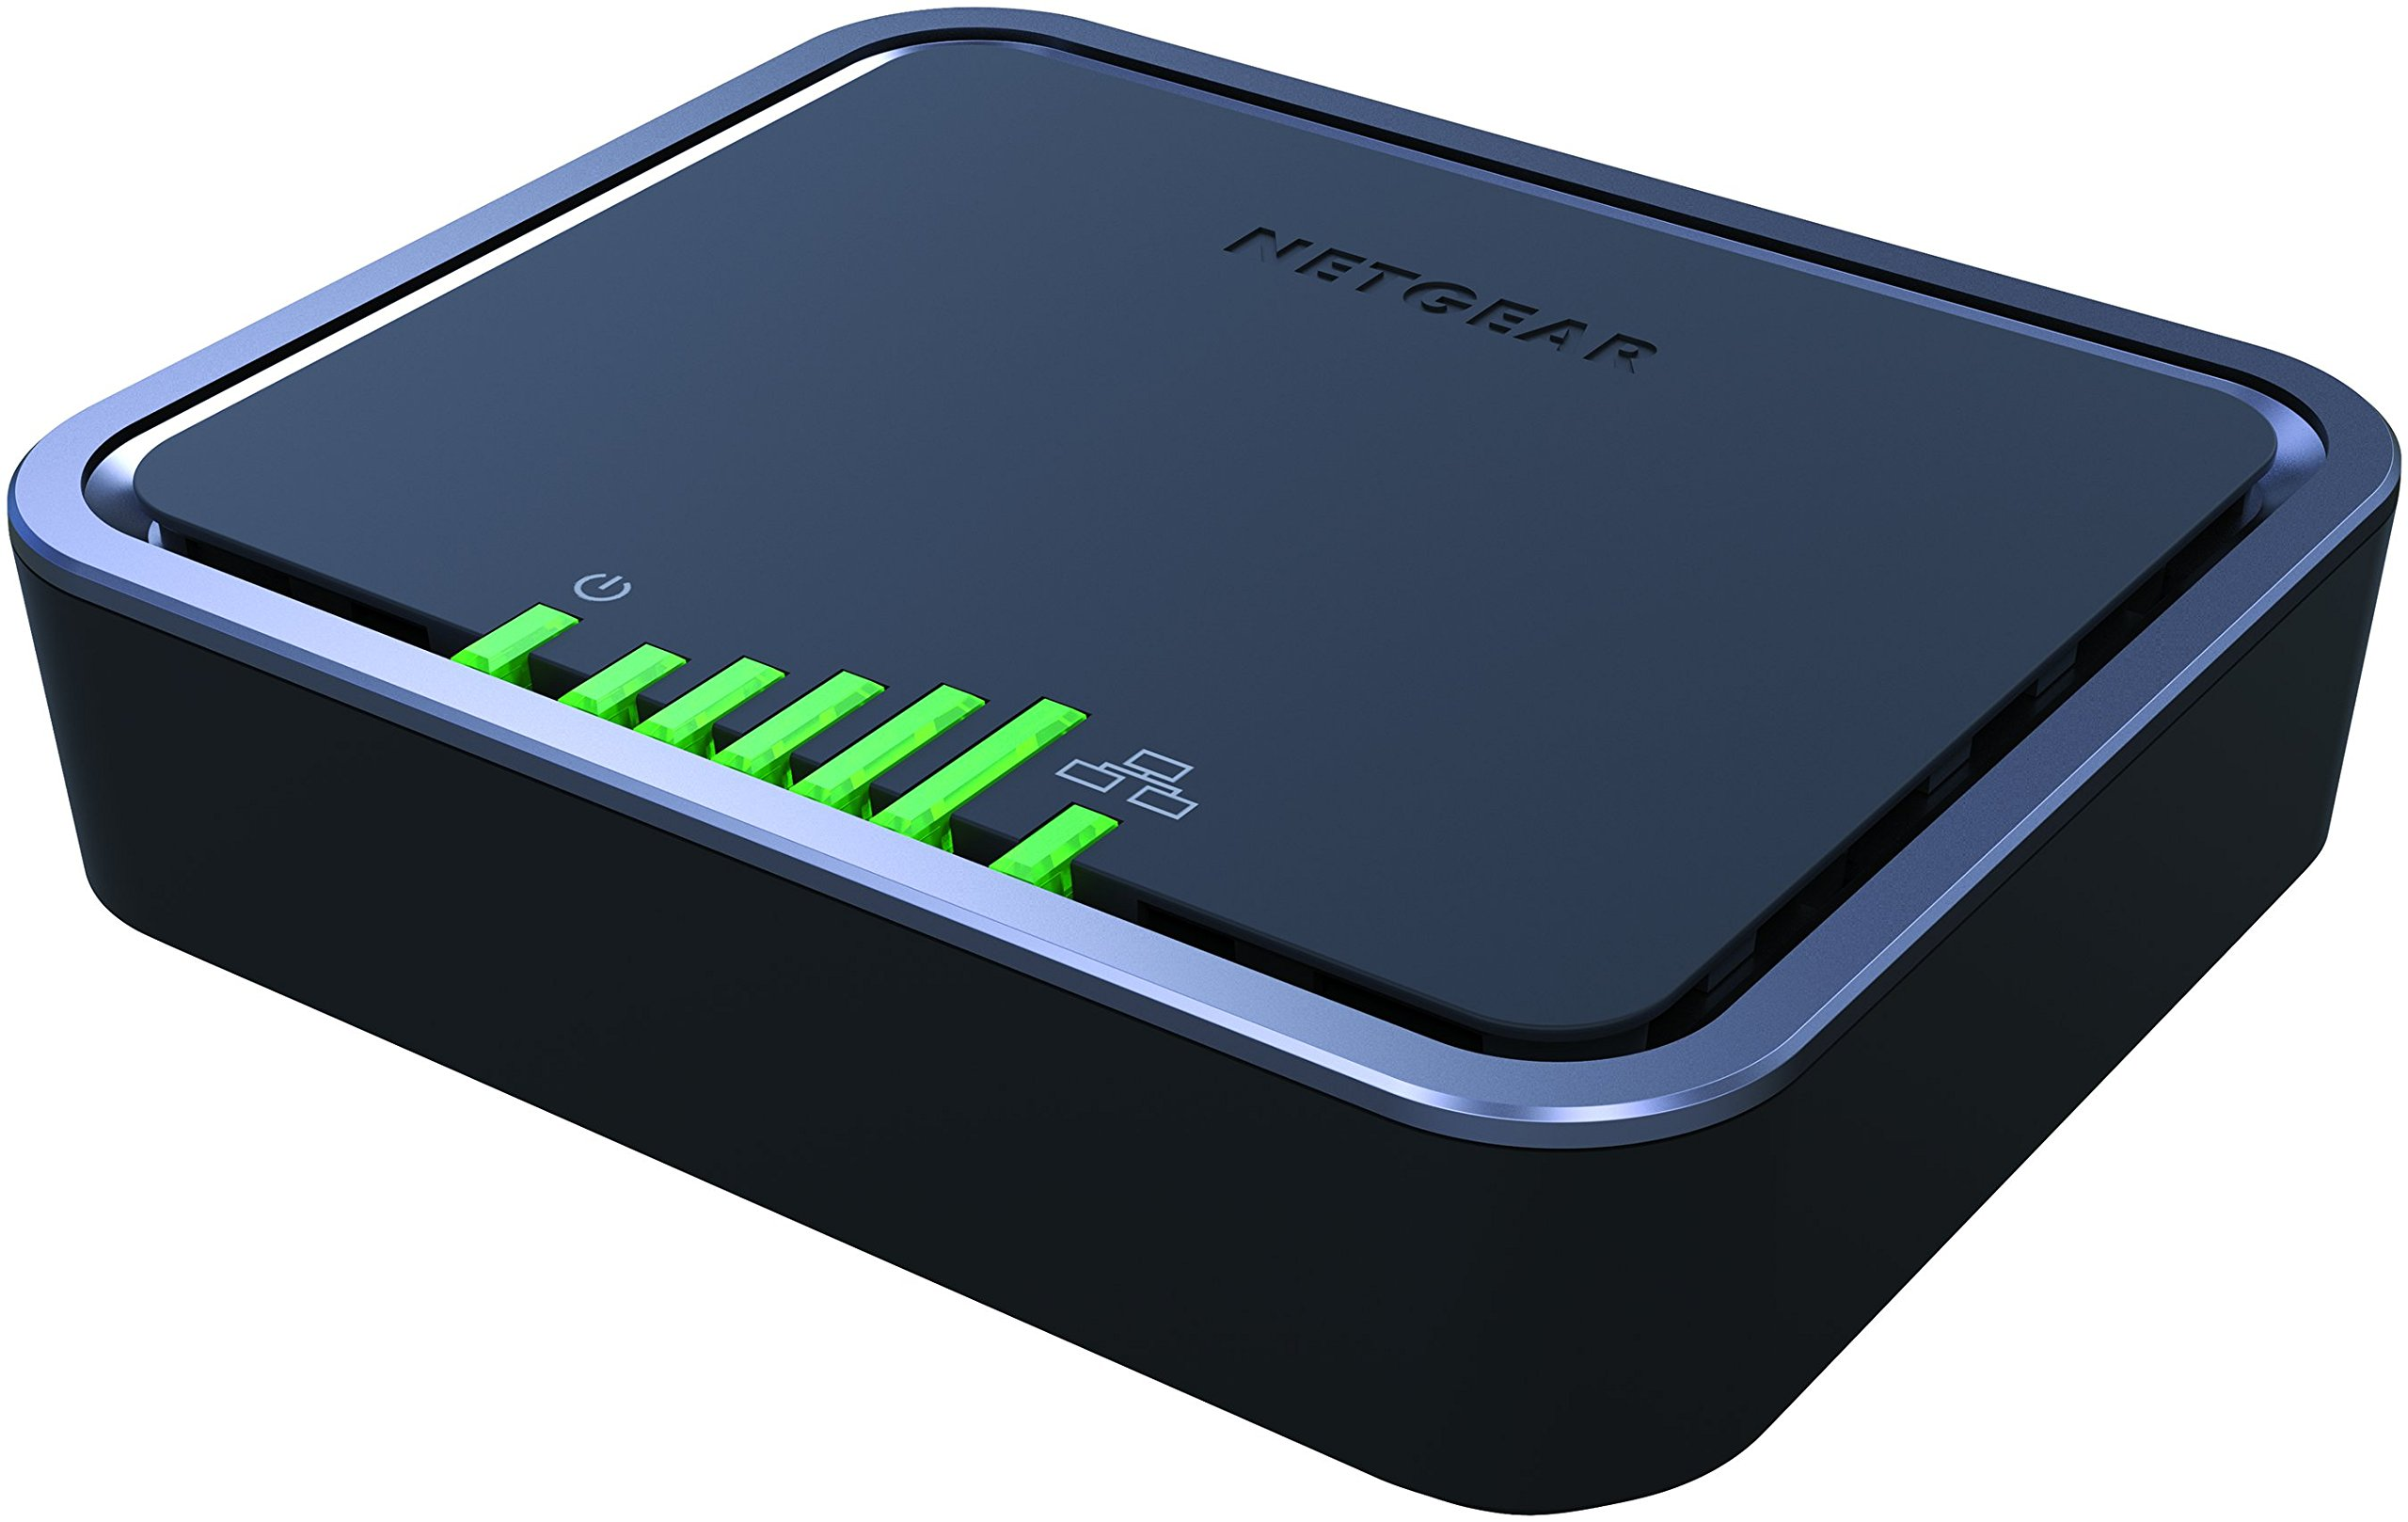 NETGEAR 4G LTE Modem with Two Gigabit Ethernet Ports - Instant Broadband Connection | Works with AT&T and Alternate Carriers (LB2120) by NETGEAR